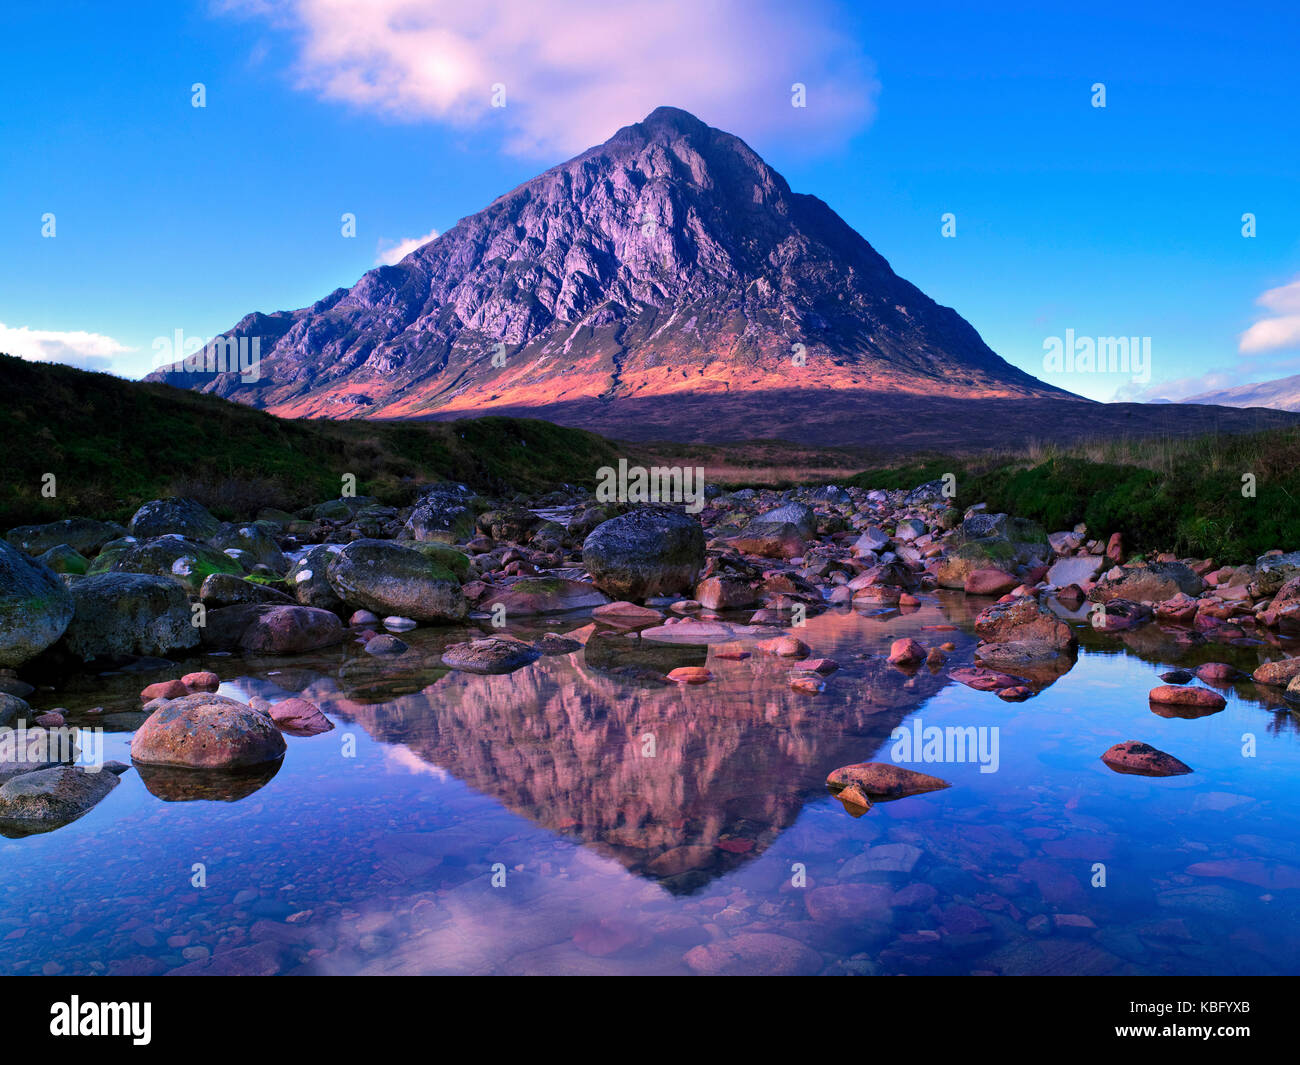 A sunny view of the famous mountain Buachaille Etive Mor and its reflection, on Rannoch Moor in the Scottish Highlands - Stock Image